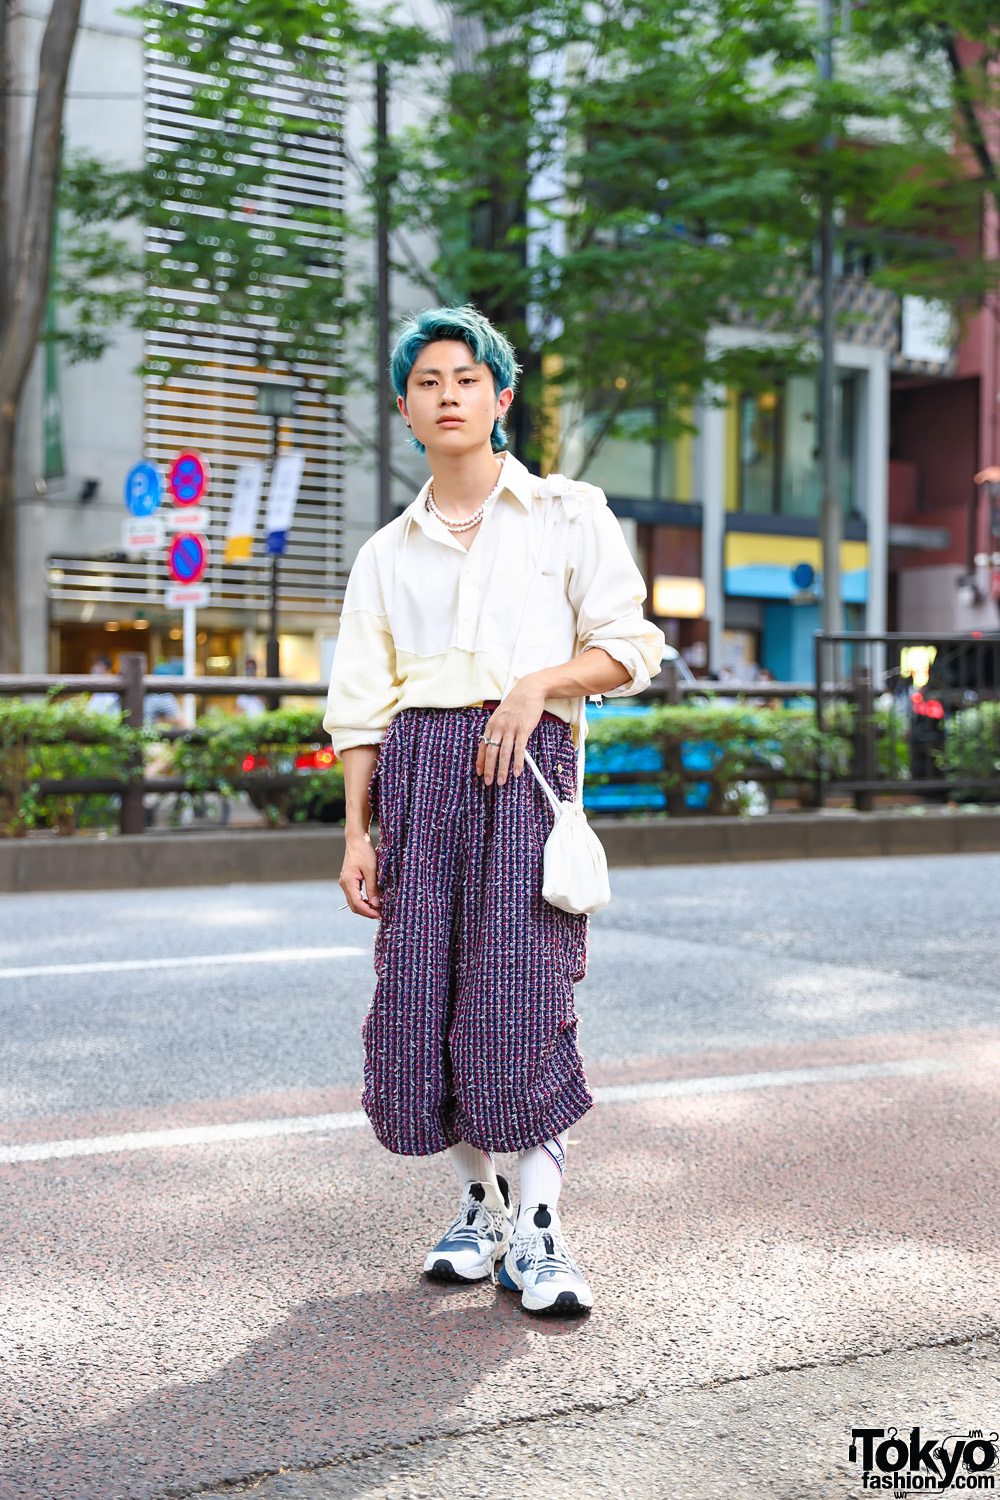 Tokyo Menswear Street Style w/ Aqua Hair, Pearl Necklaces, Sulvam, Kota Gushiken, Landlord NY Tweed Pants, Elena Dawson Pouch & Flower Mountain Sneakers